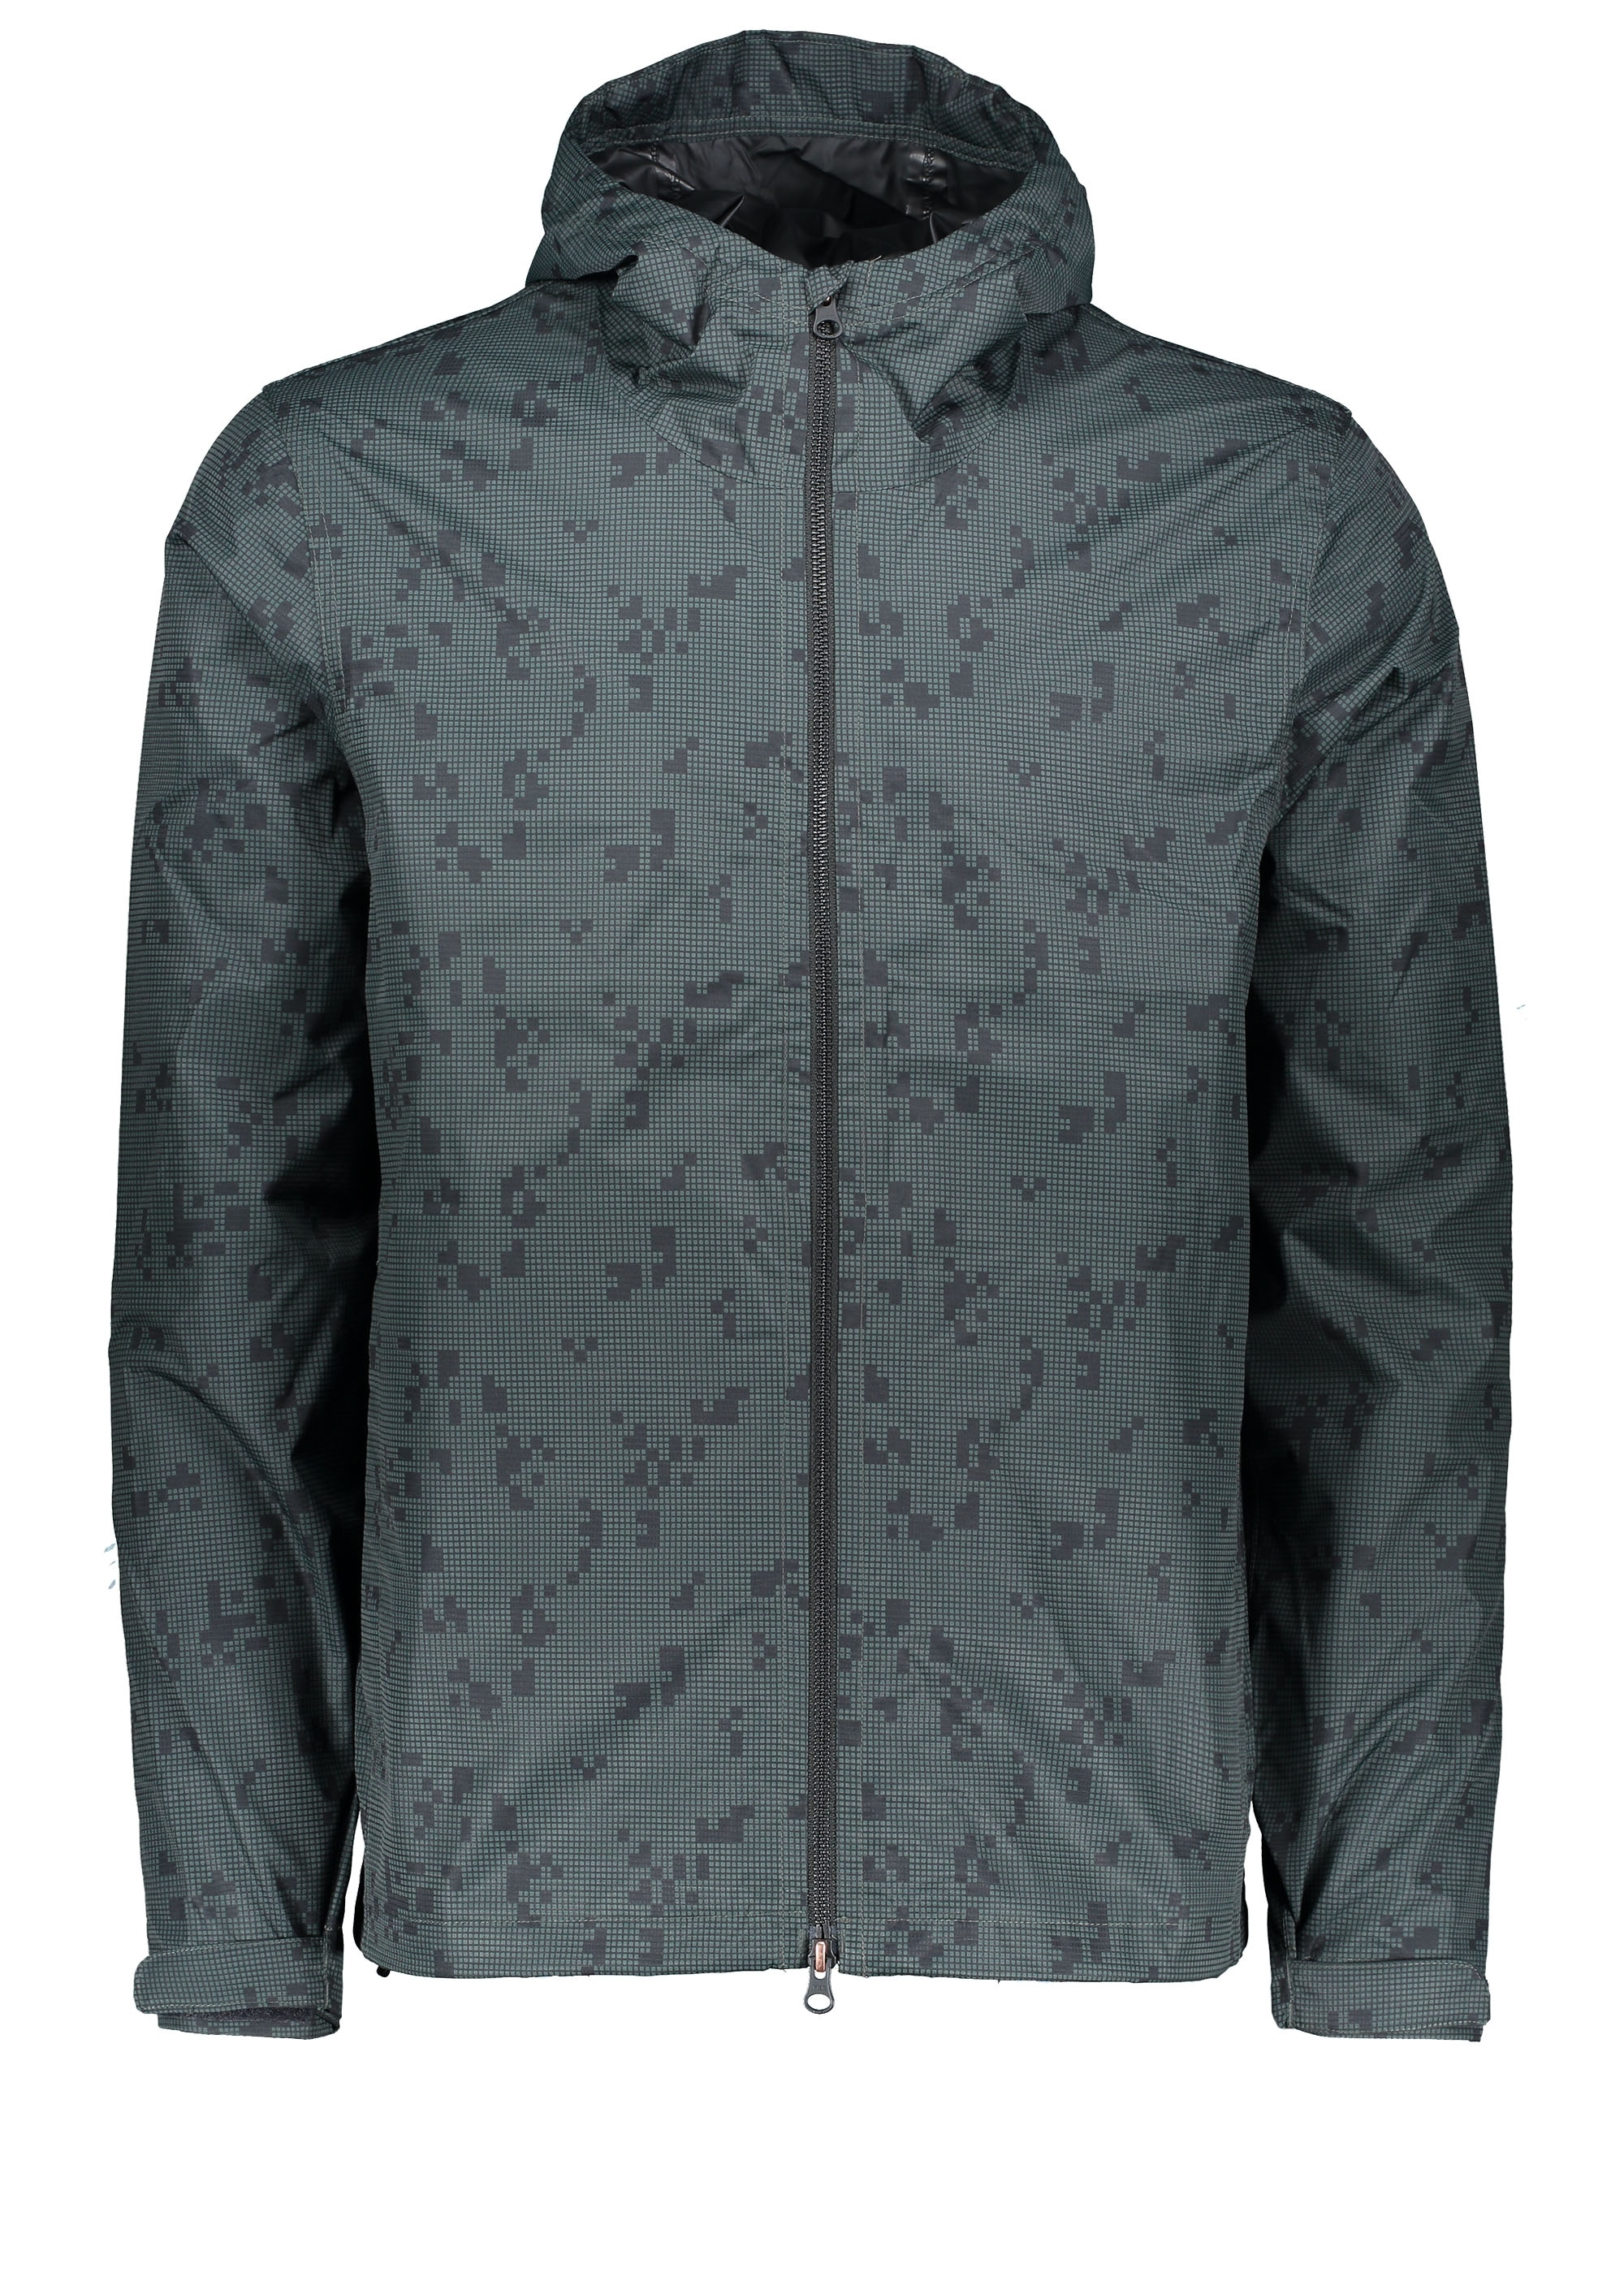 c9bc1385 Commuter Pro Echelon WB - Parakeet - Jackets from Triads UK